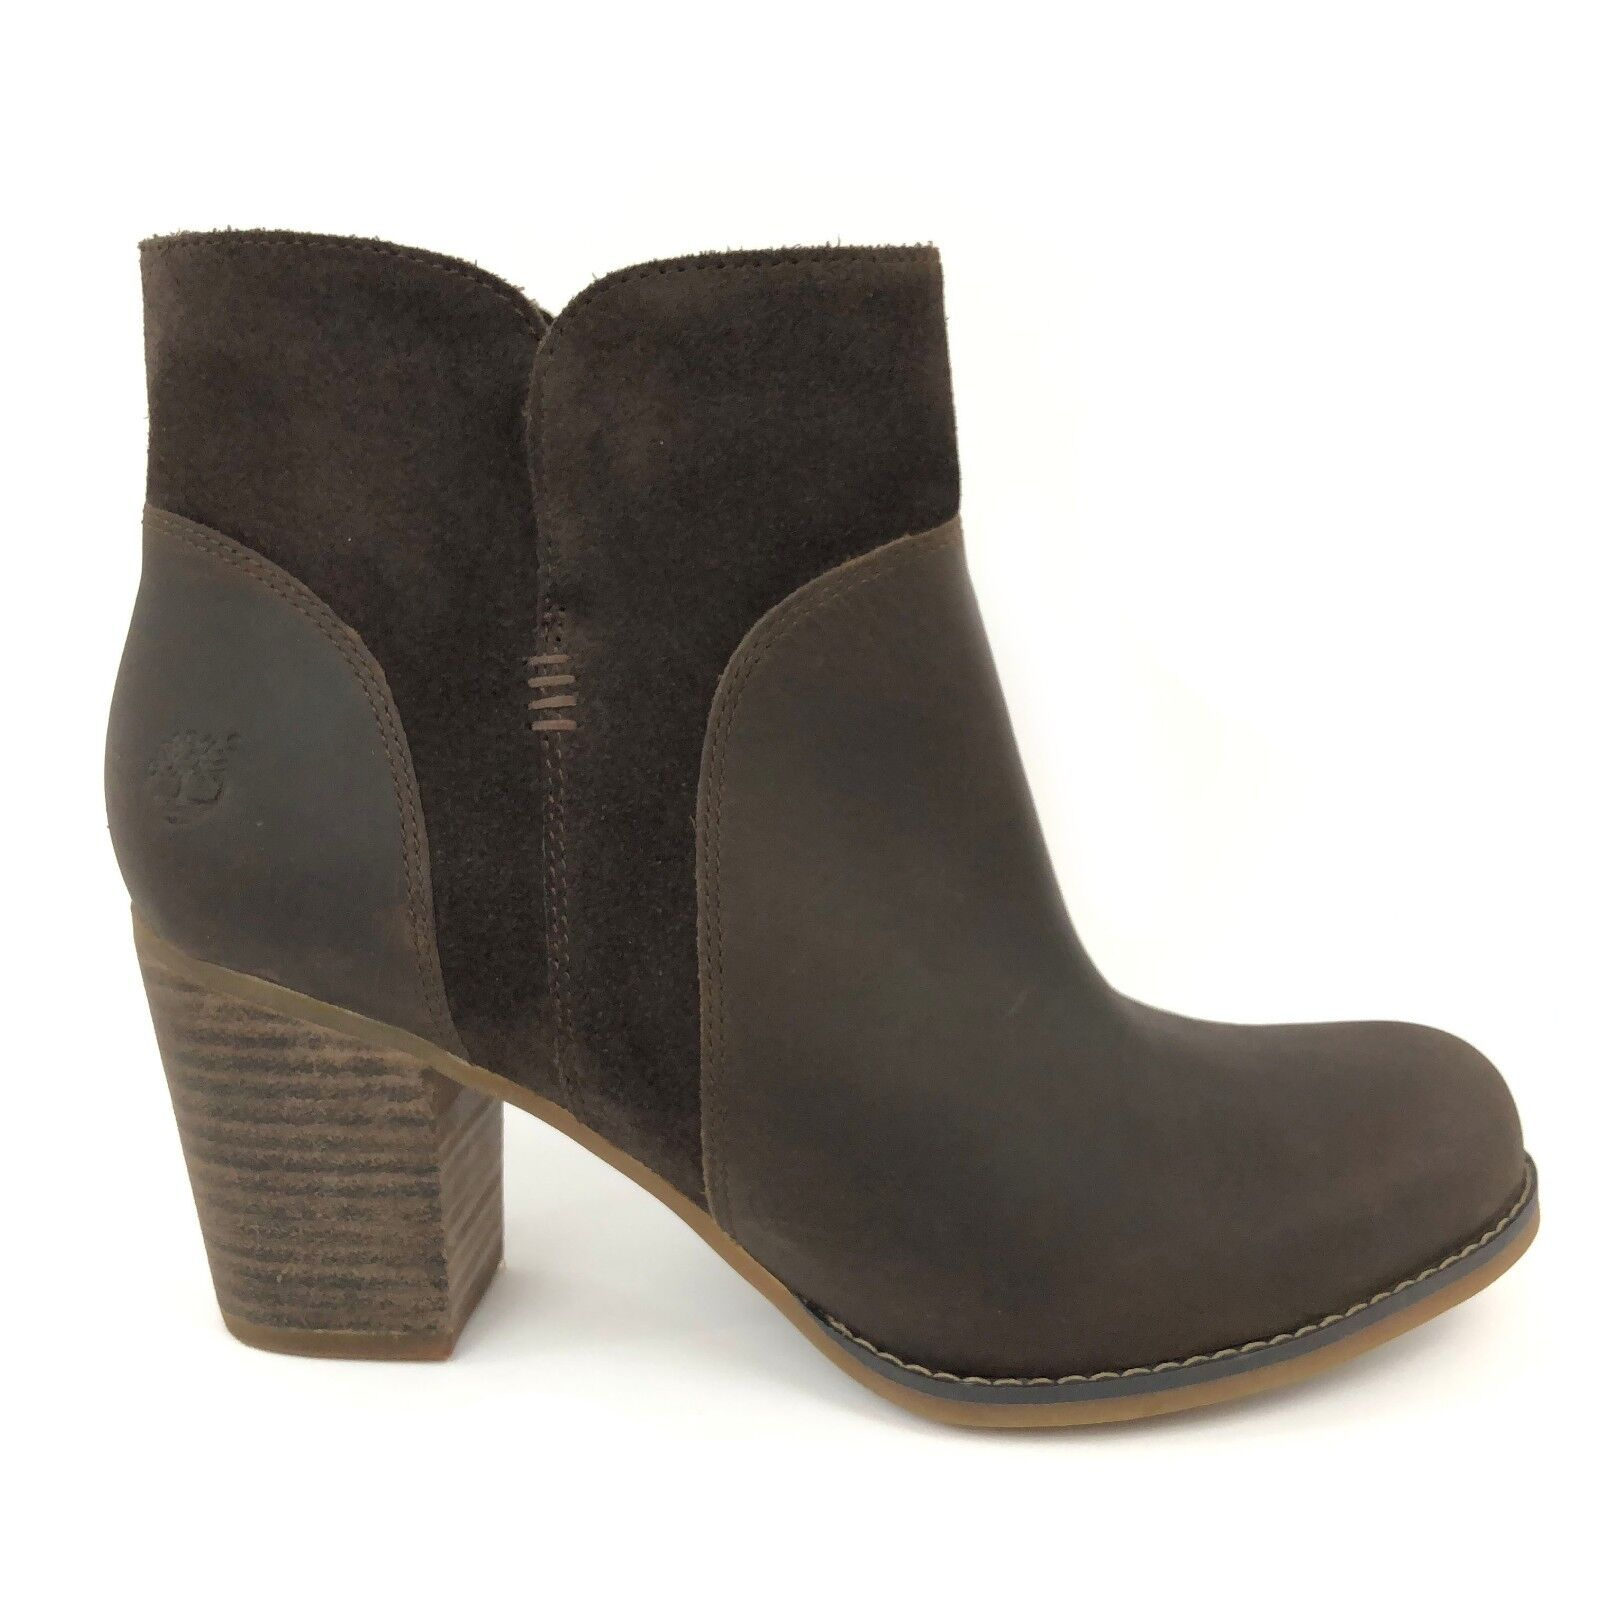 Timberland Women's Rudston Dark Brown Leather Ankle Heeled Boots A1621 1